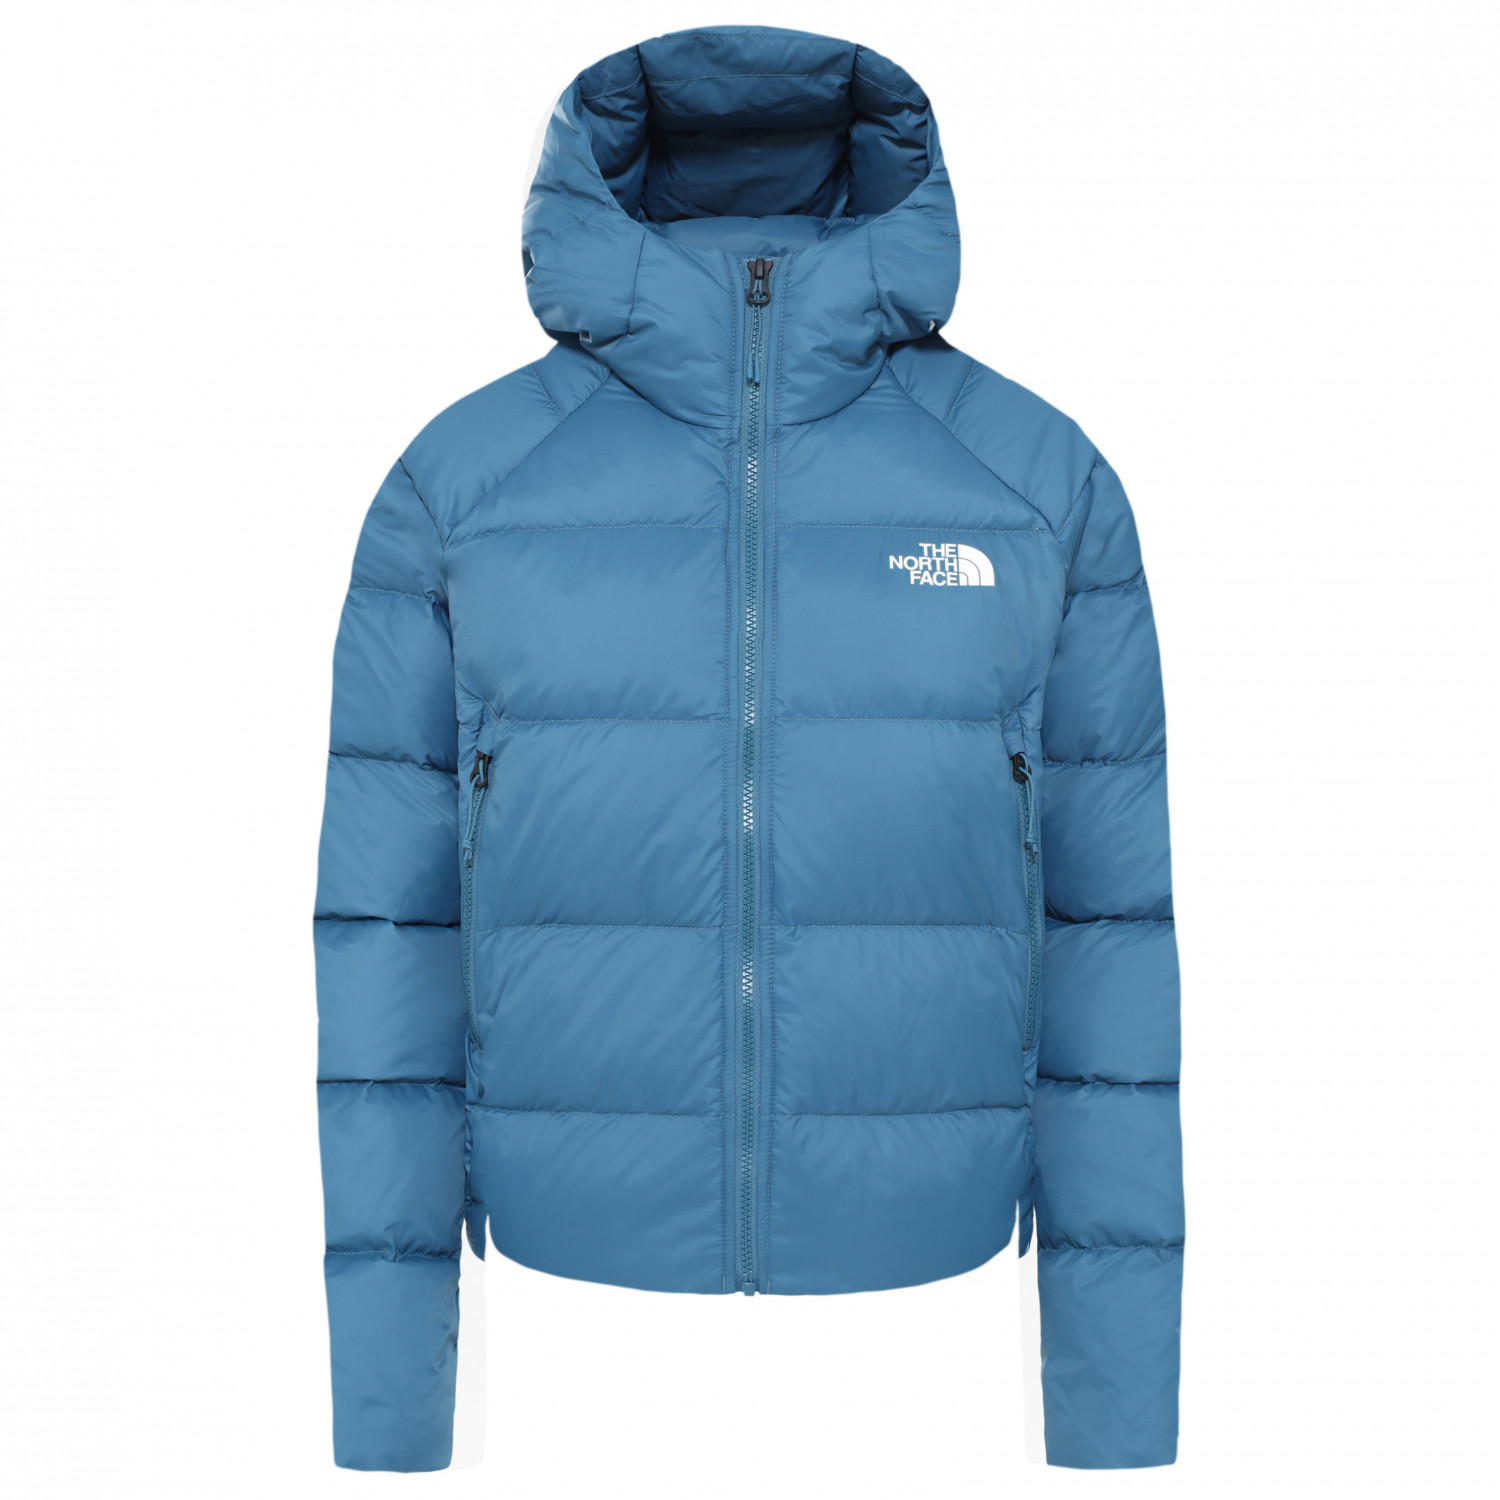 The North Face Women's Hyalite Down Hoodie Dunjacka Mallard Blue | L